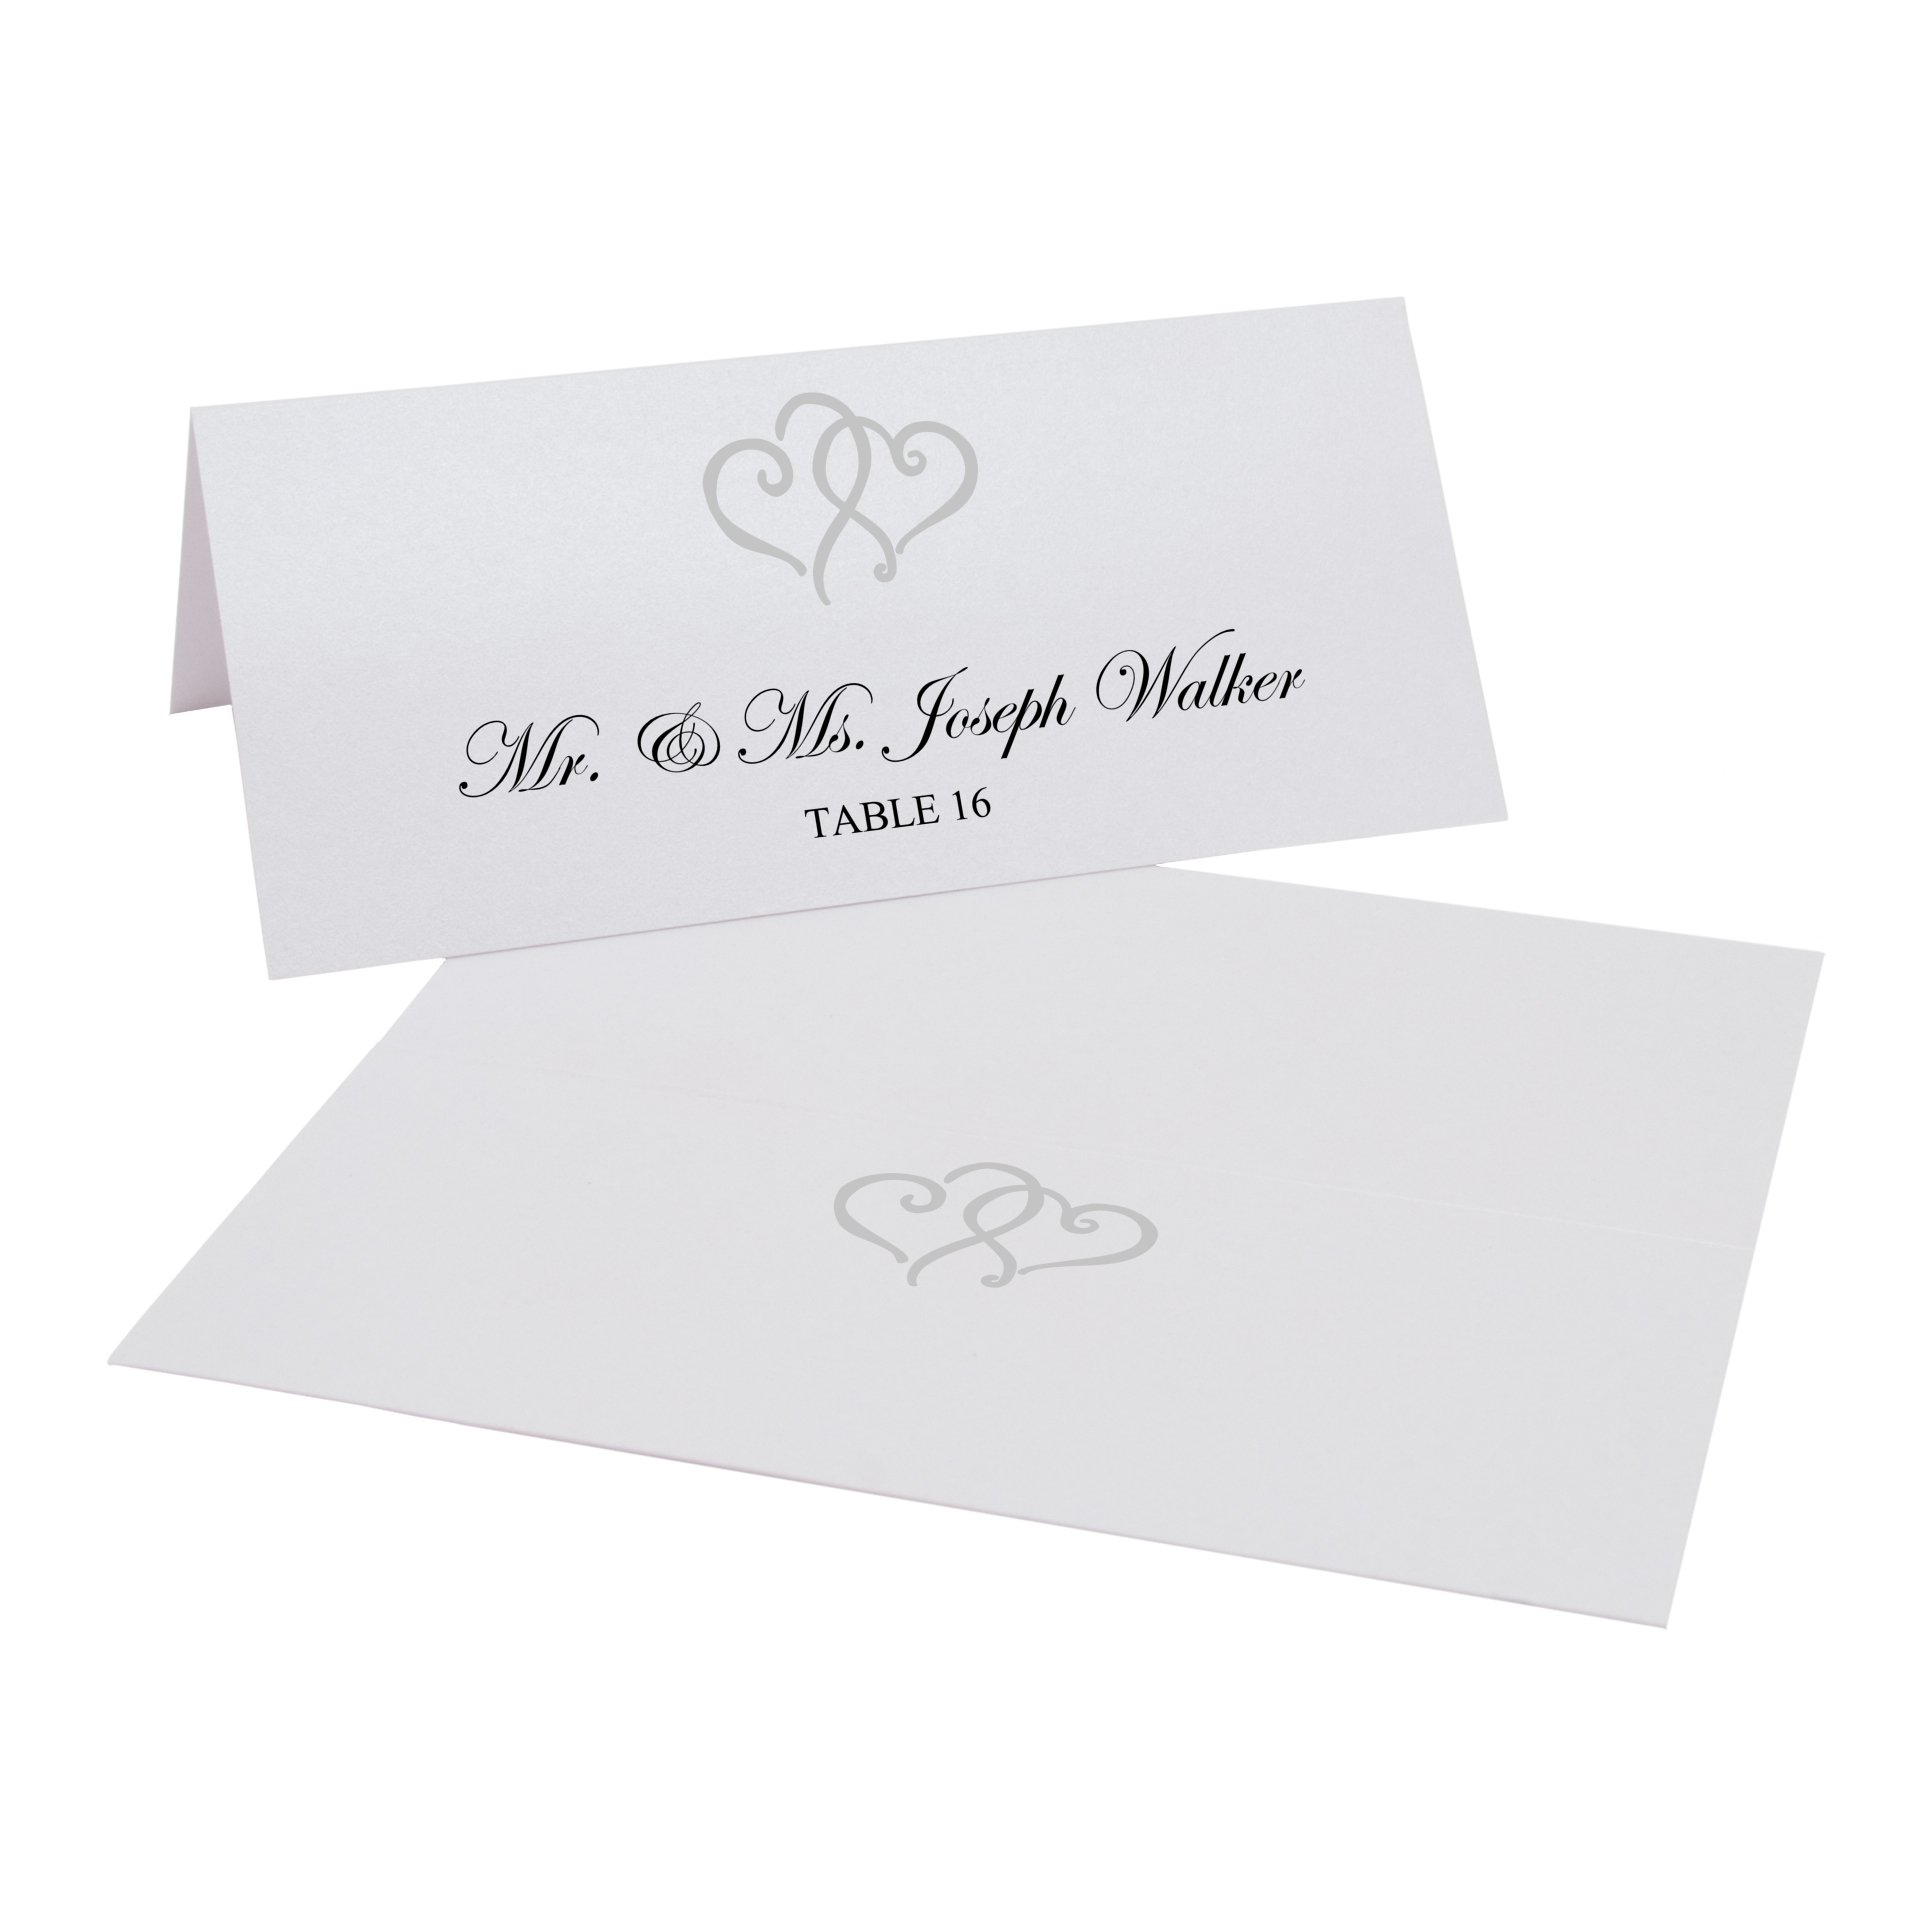 Linked Hearts Easy Print Place Cards, Pearl White, Silver, Set of 450 (113 Sheets)